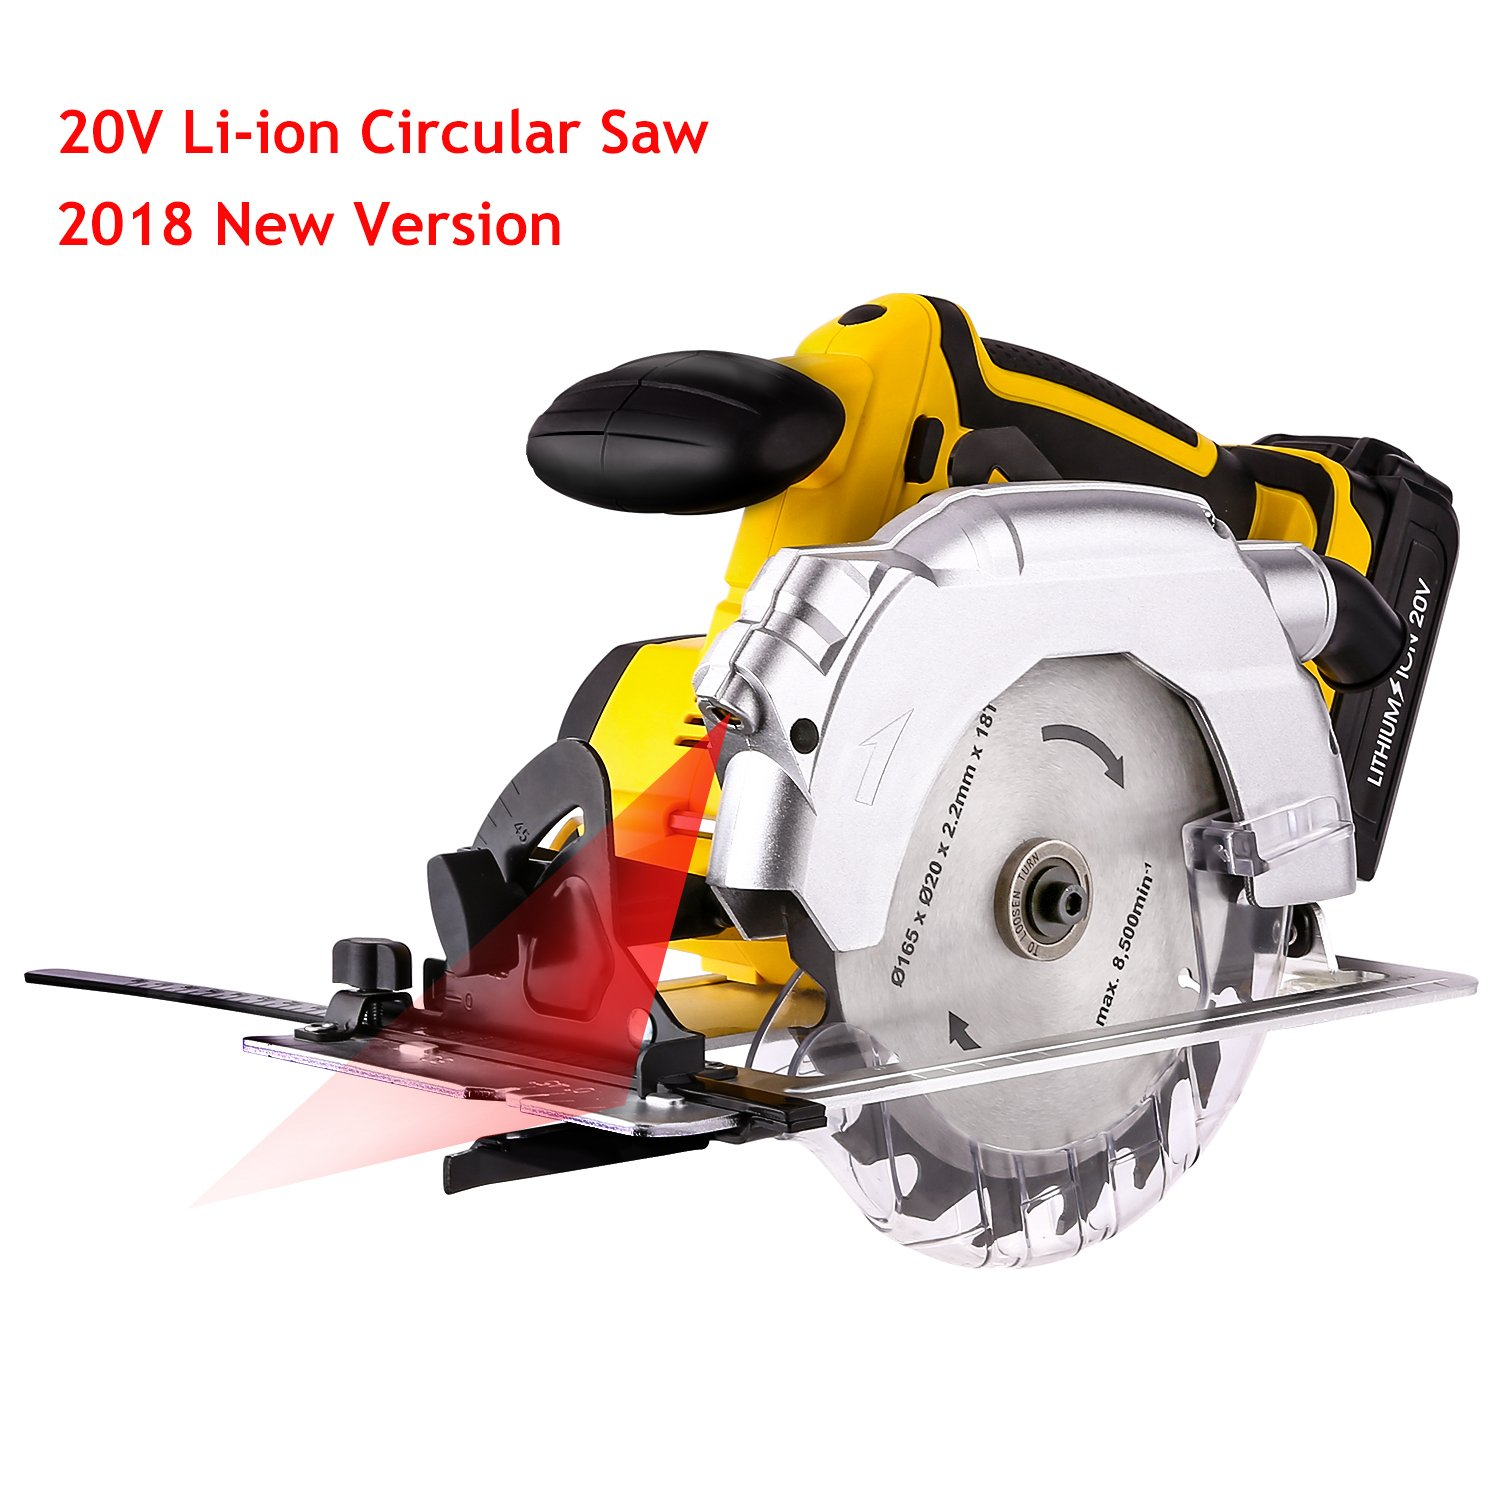 Voluker 20V Portable Circular Saw, Cordless, 7000 RPM 6-1/2'' Saw Blade with Lightweight Safety Guard, Laser Guide and Guide Ruler, Li-ion Battery and Charger Adapter Included